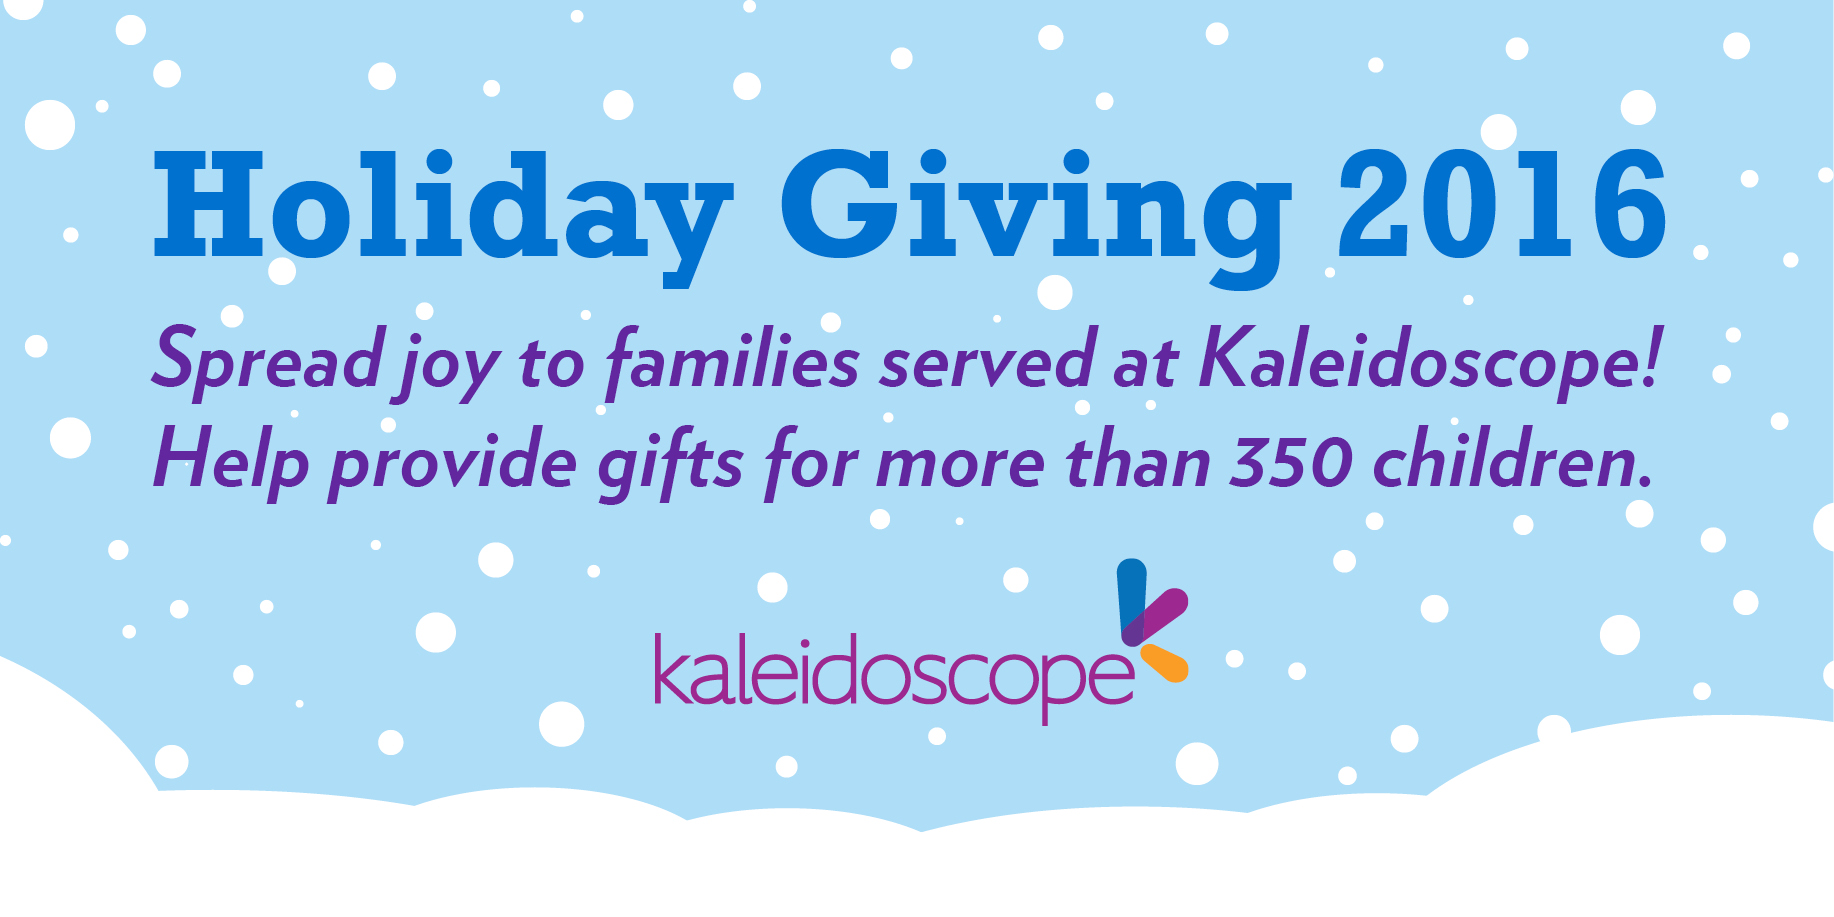 kaleidoscope-fb-preview-holiday-giving-2016